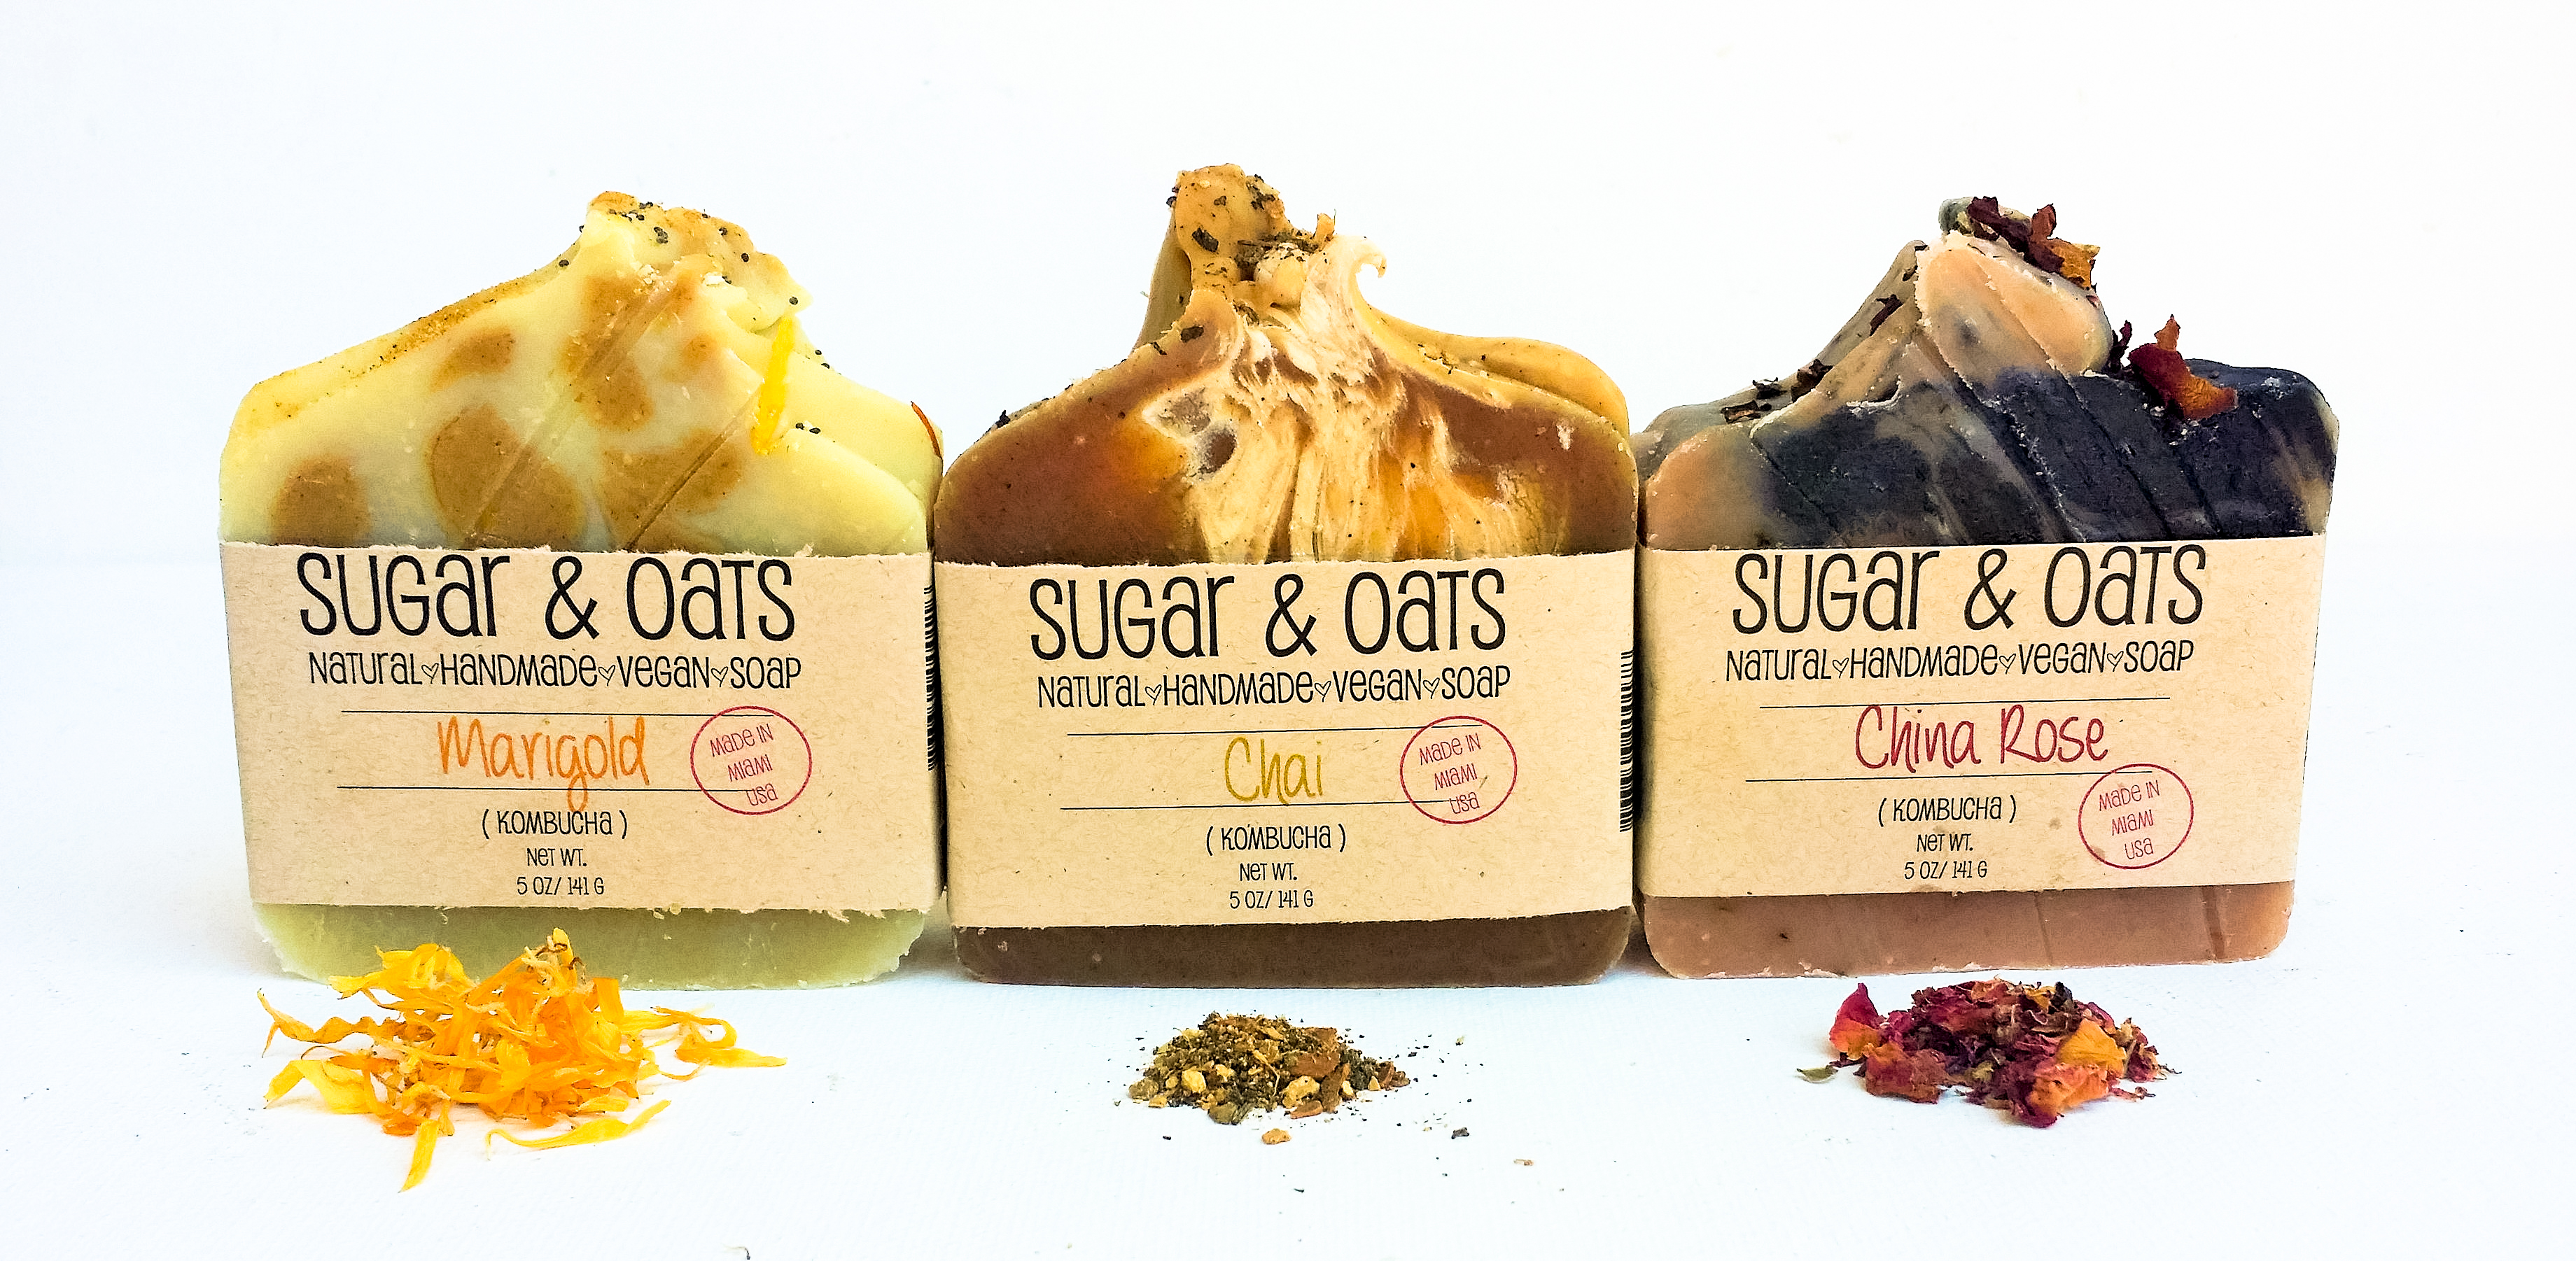 Sugar-And-Oats-3-Kombucha-Soaps-Vegan.jpg